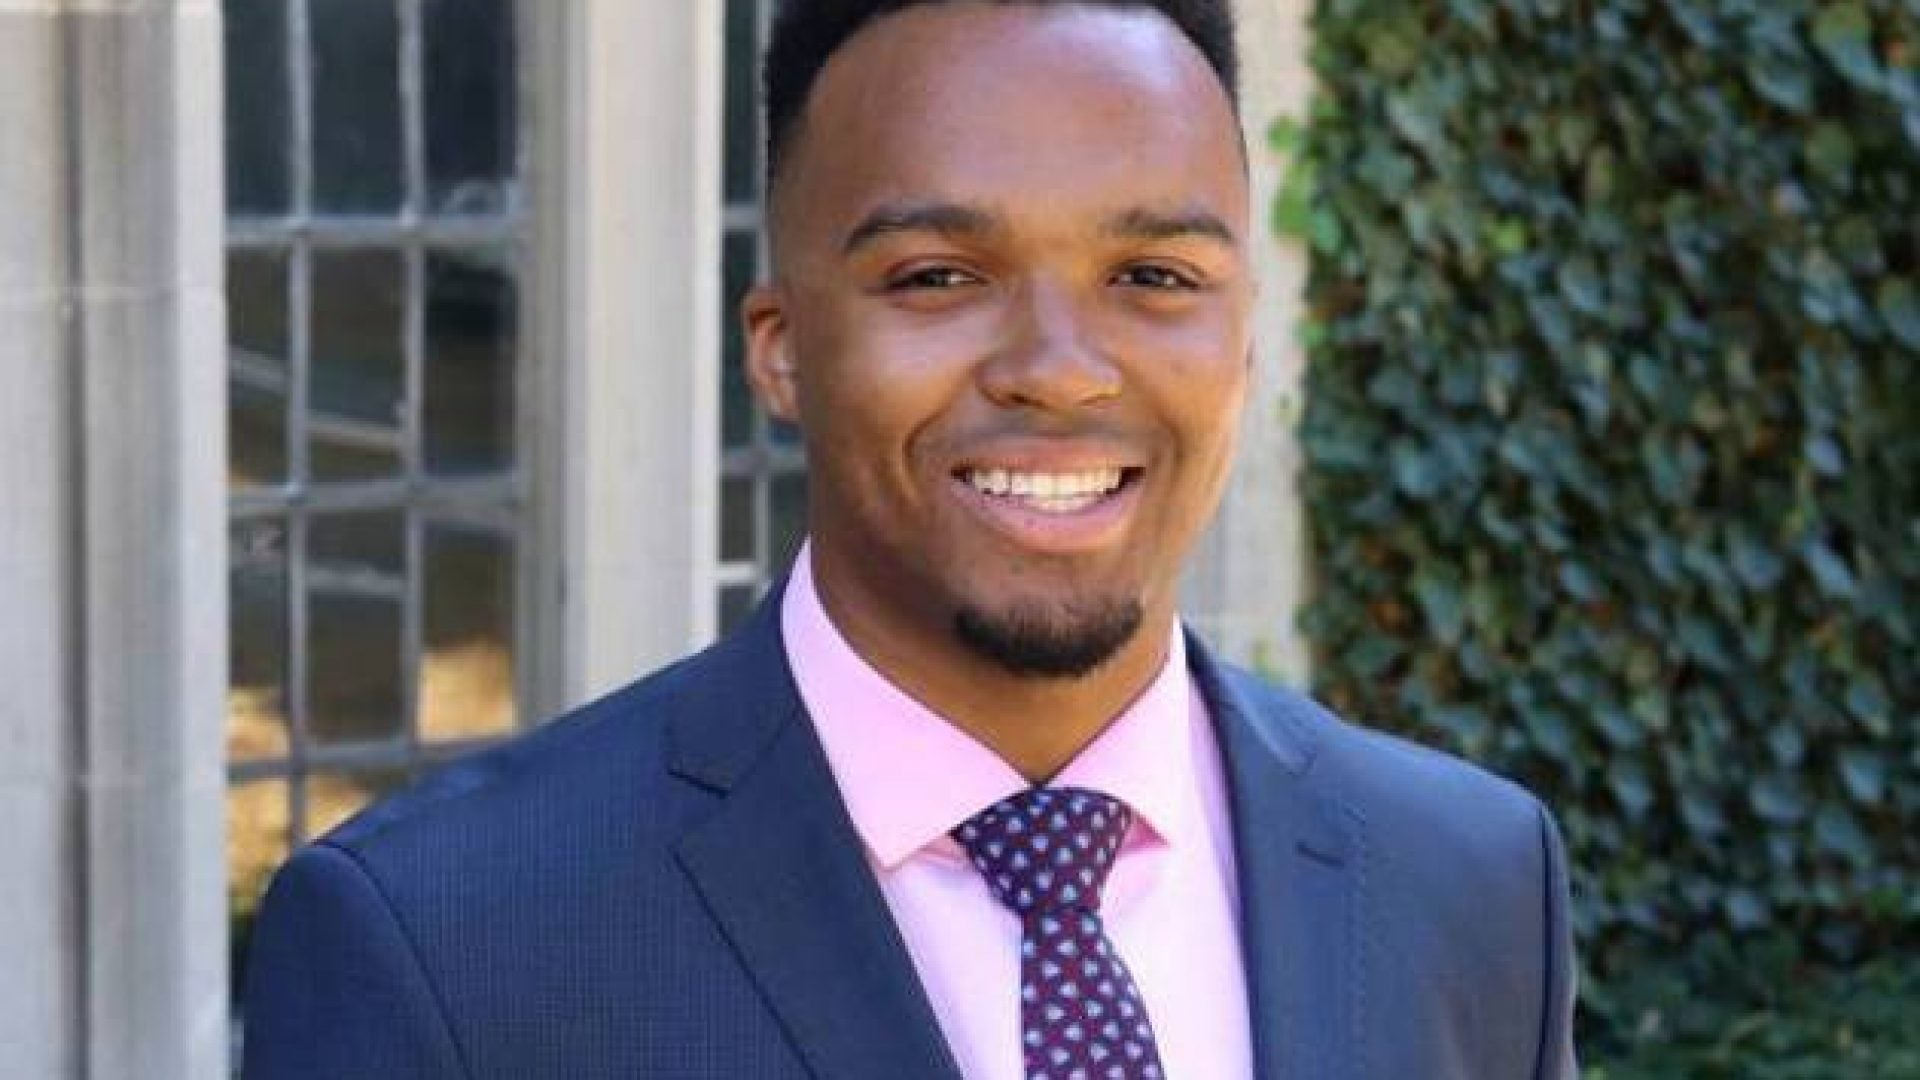 Princeton Will Have A Black Valedictorian For The First Time In Its History